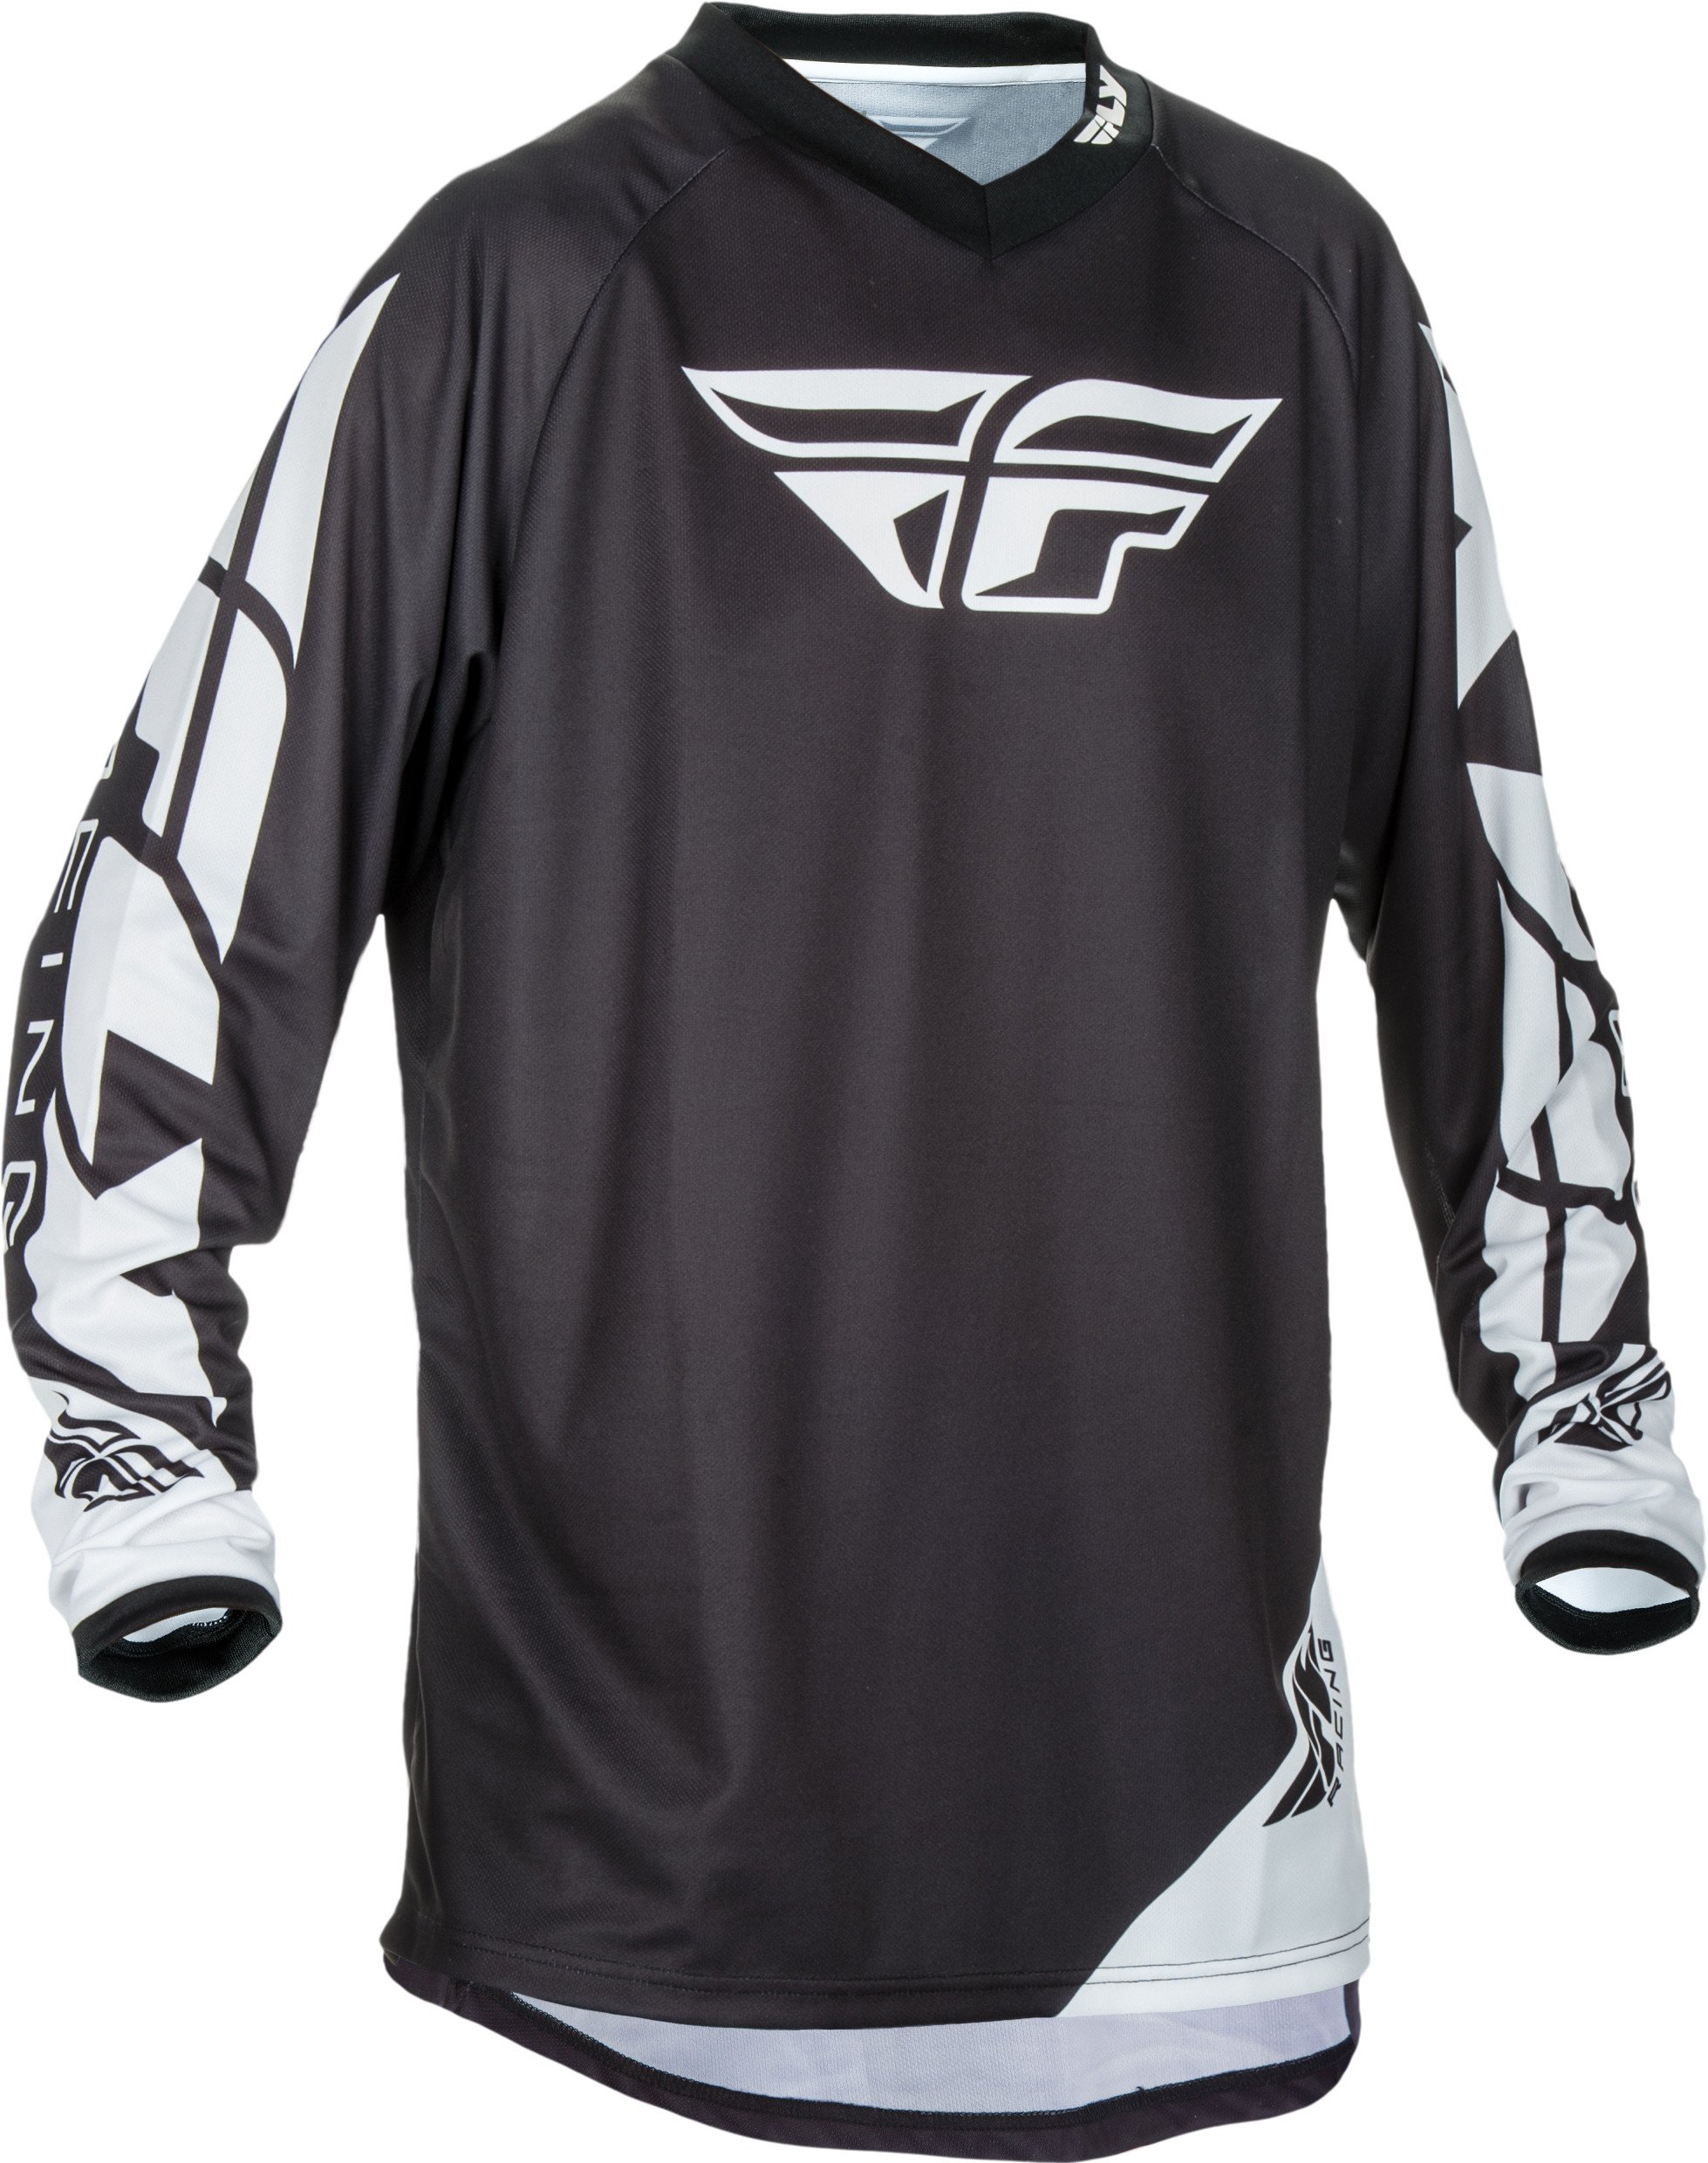 Black Sz XL Fly Racing Universal Motocross Jersey by Fly Racing